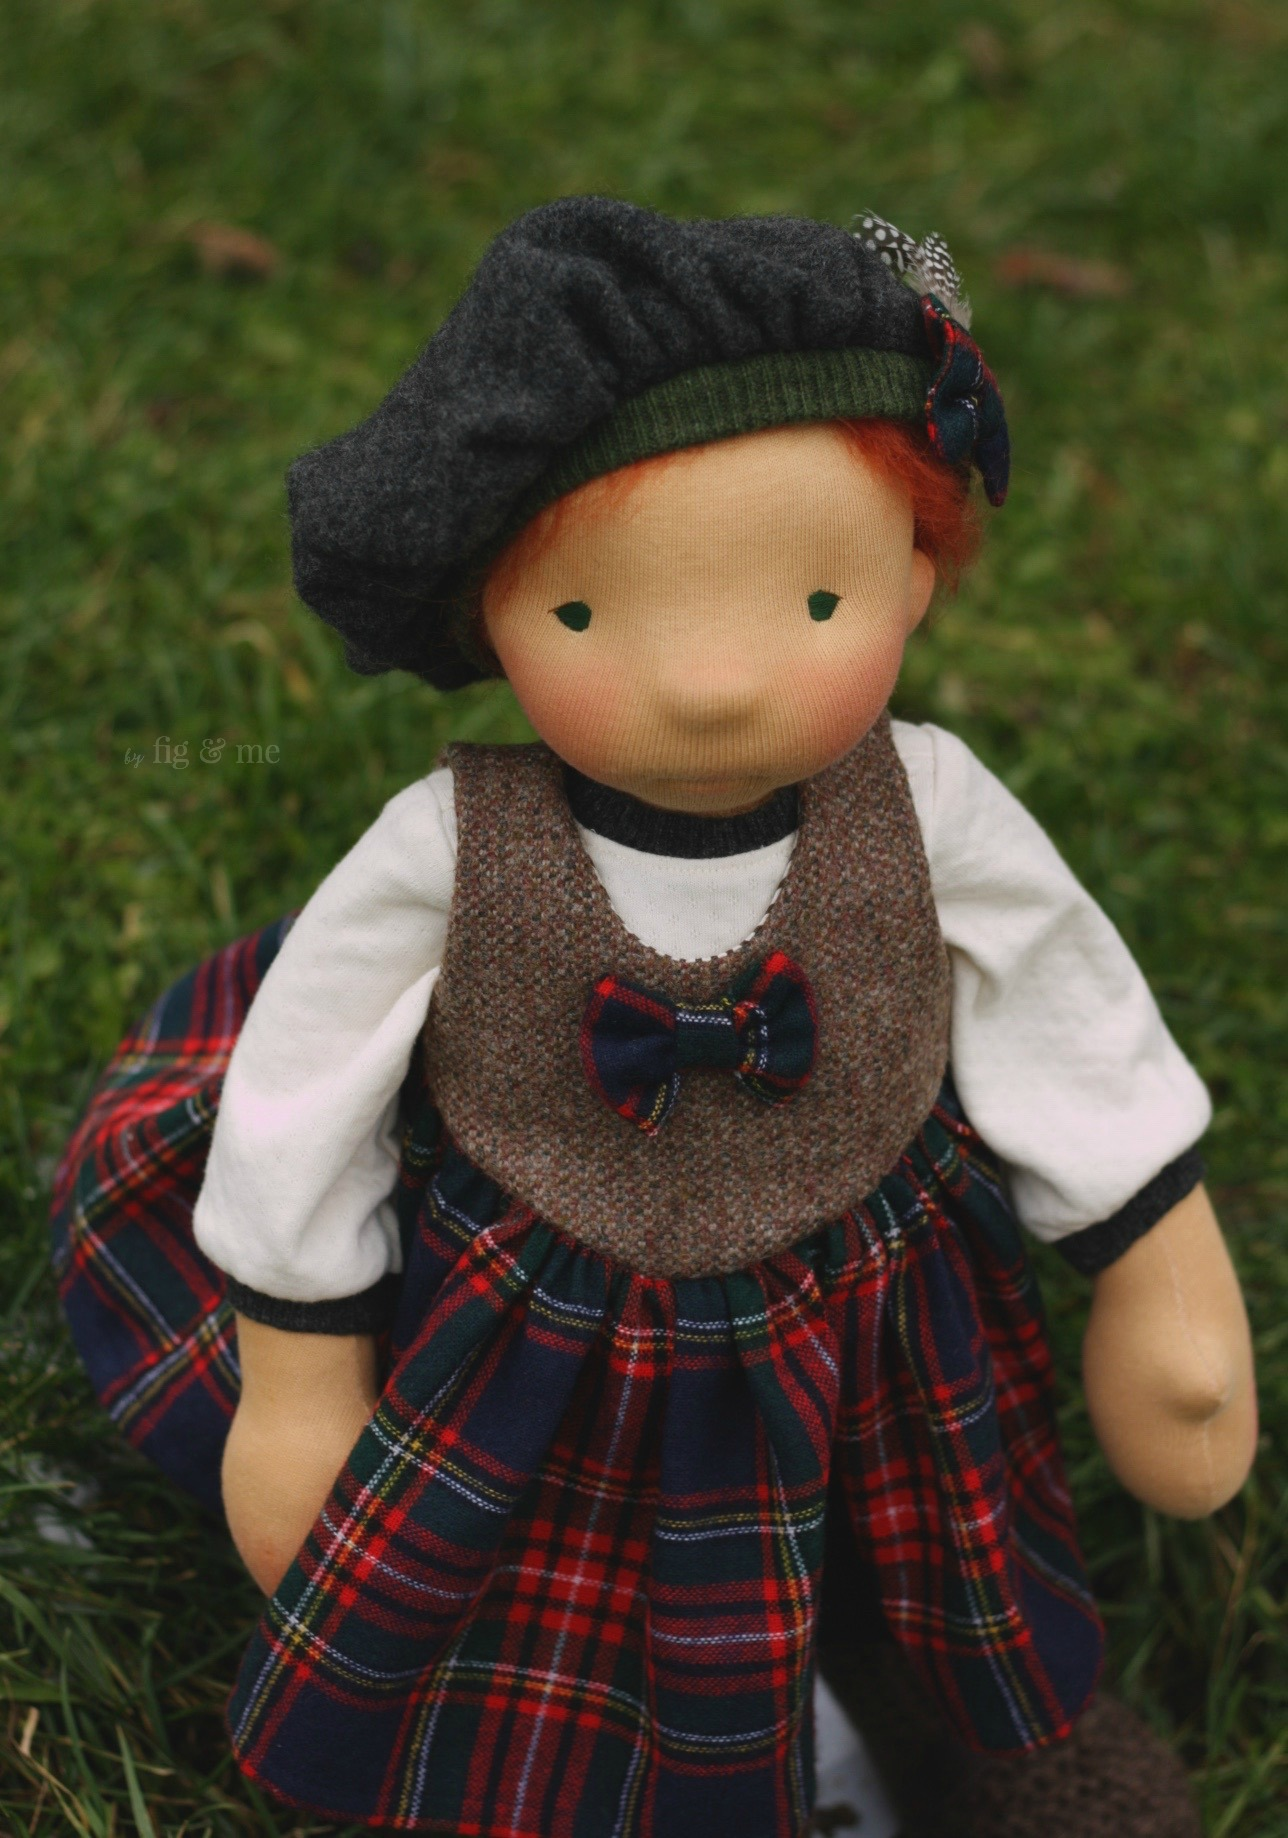 """Kilda shows off her pretty tartan and tweed dress. Kilda is a natural fiber art doll of the 20"""" tall variety, made with love by Fig and Me."""